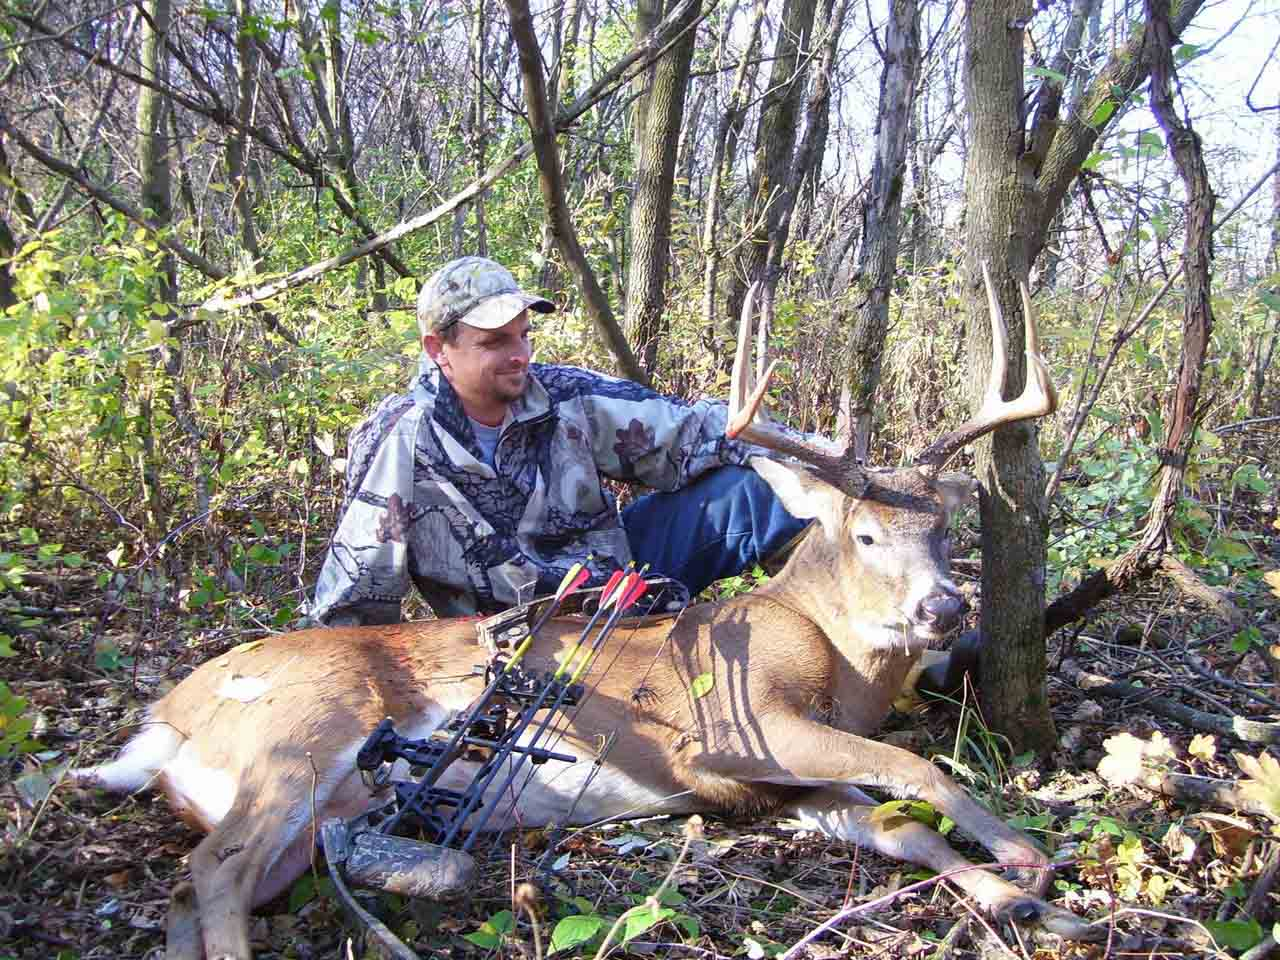 Limited visits to stands deep in his hunting areas minimizes impact on older deer.